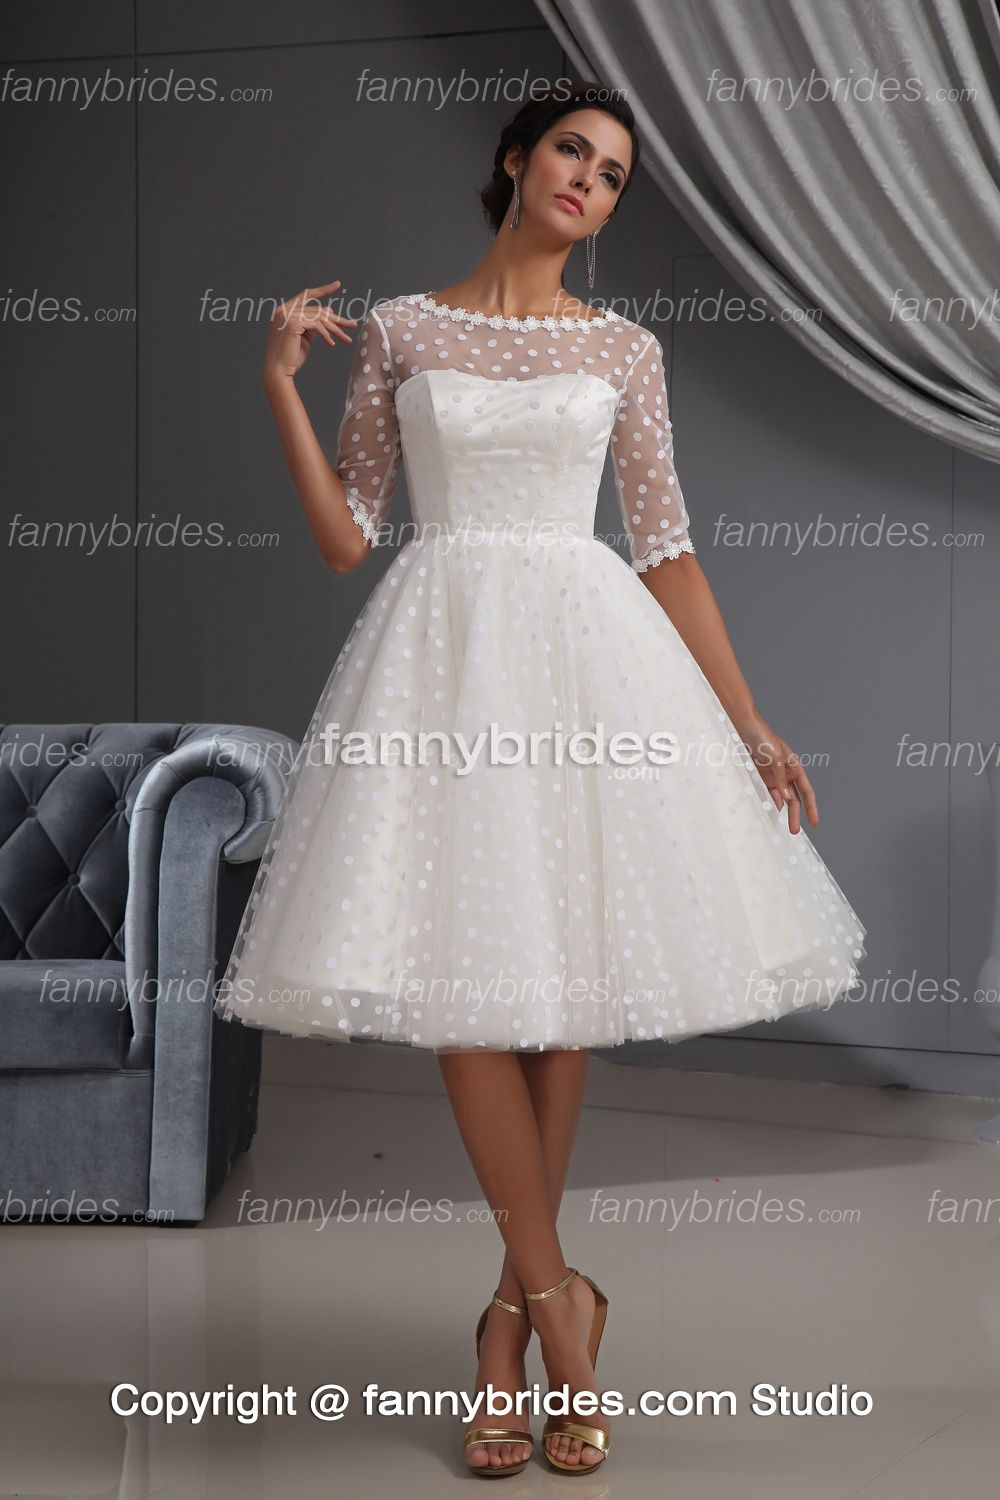 Cute short wedding dresses Google Search yep who knew